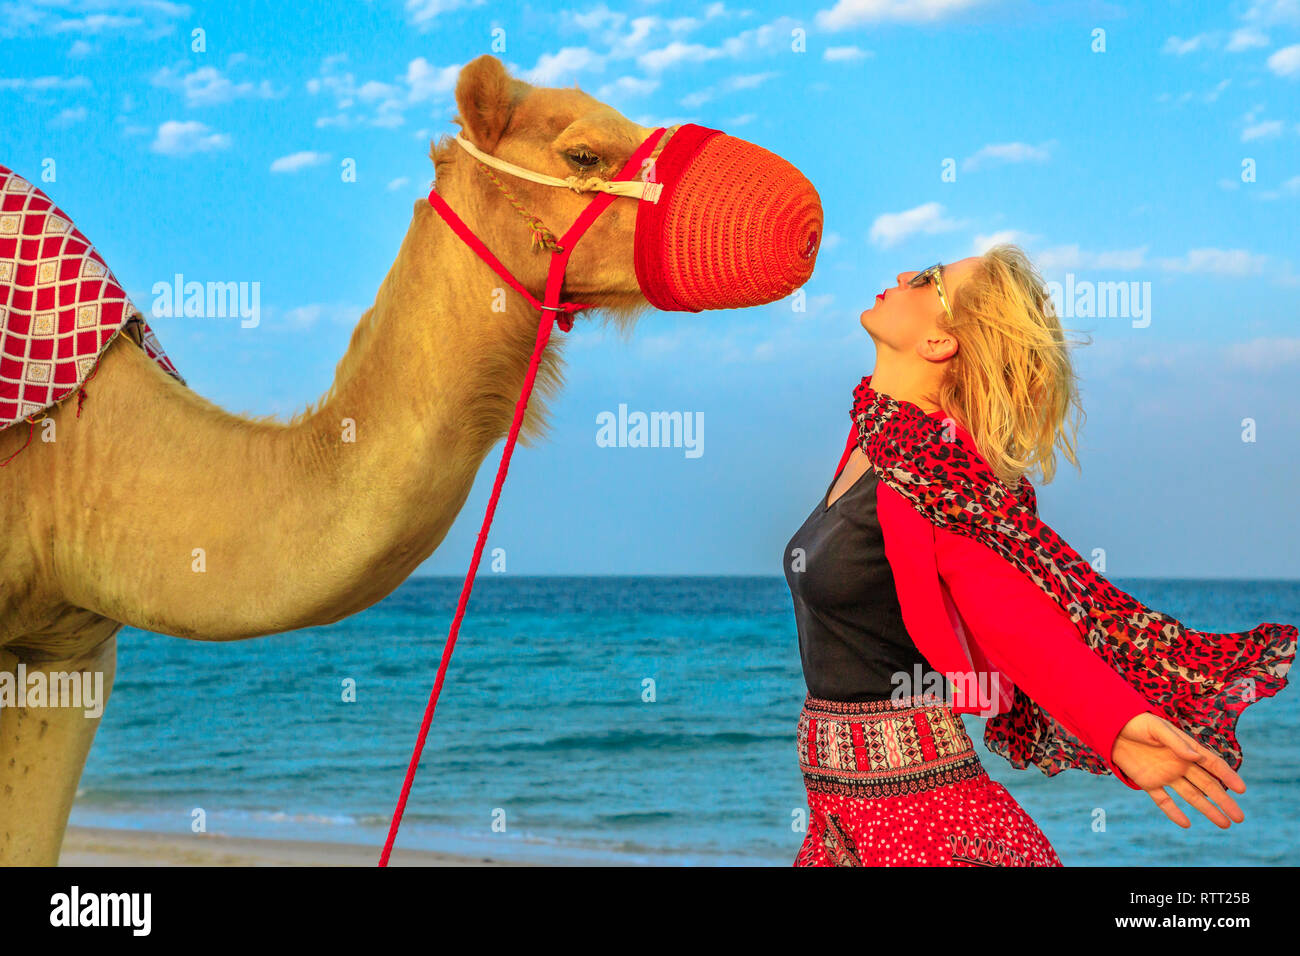 Carefree blonde woman encounter with camel on a beach of Khor al Udaid in Persian Gulf of southern Qatar. Caucasian tourist after camel ride, a - Stock Image